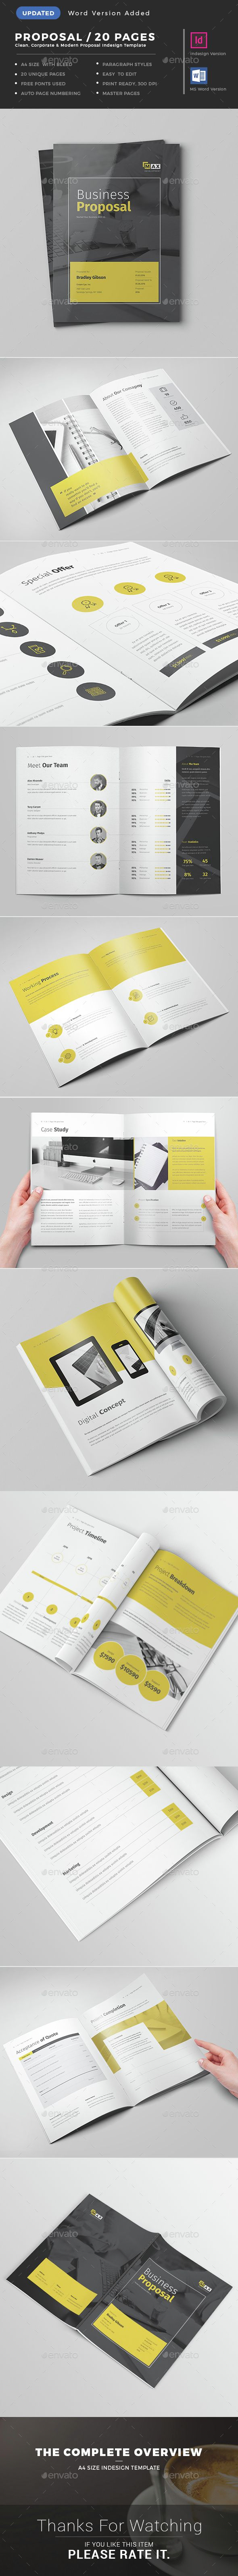 Proposal Template Pinterest Proposal Templates Proposals And